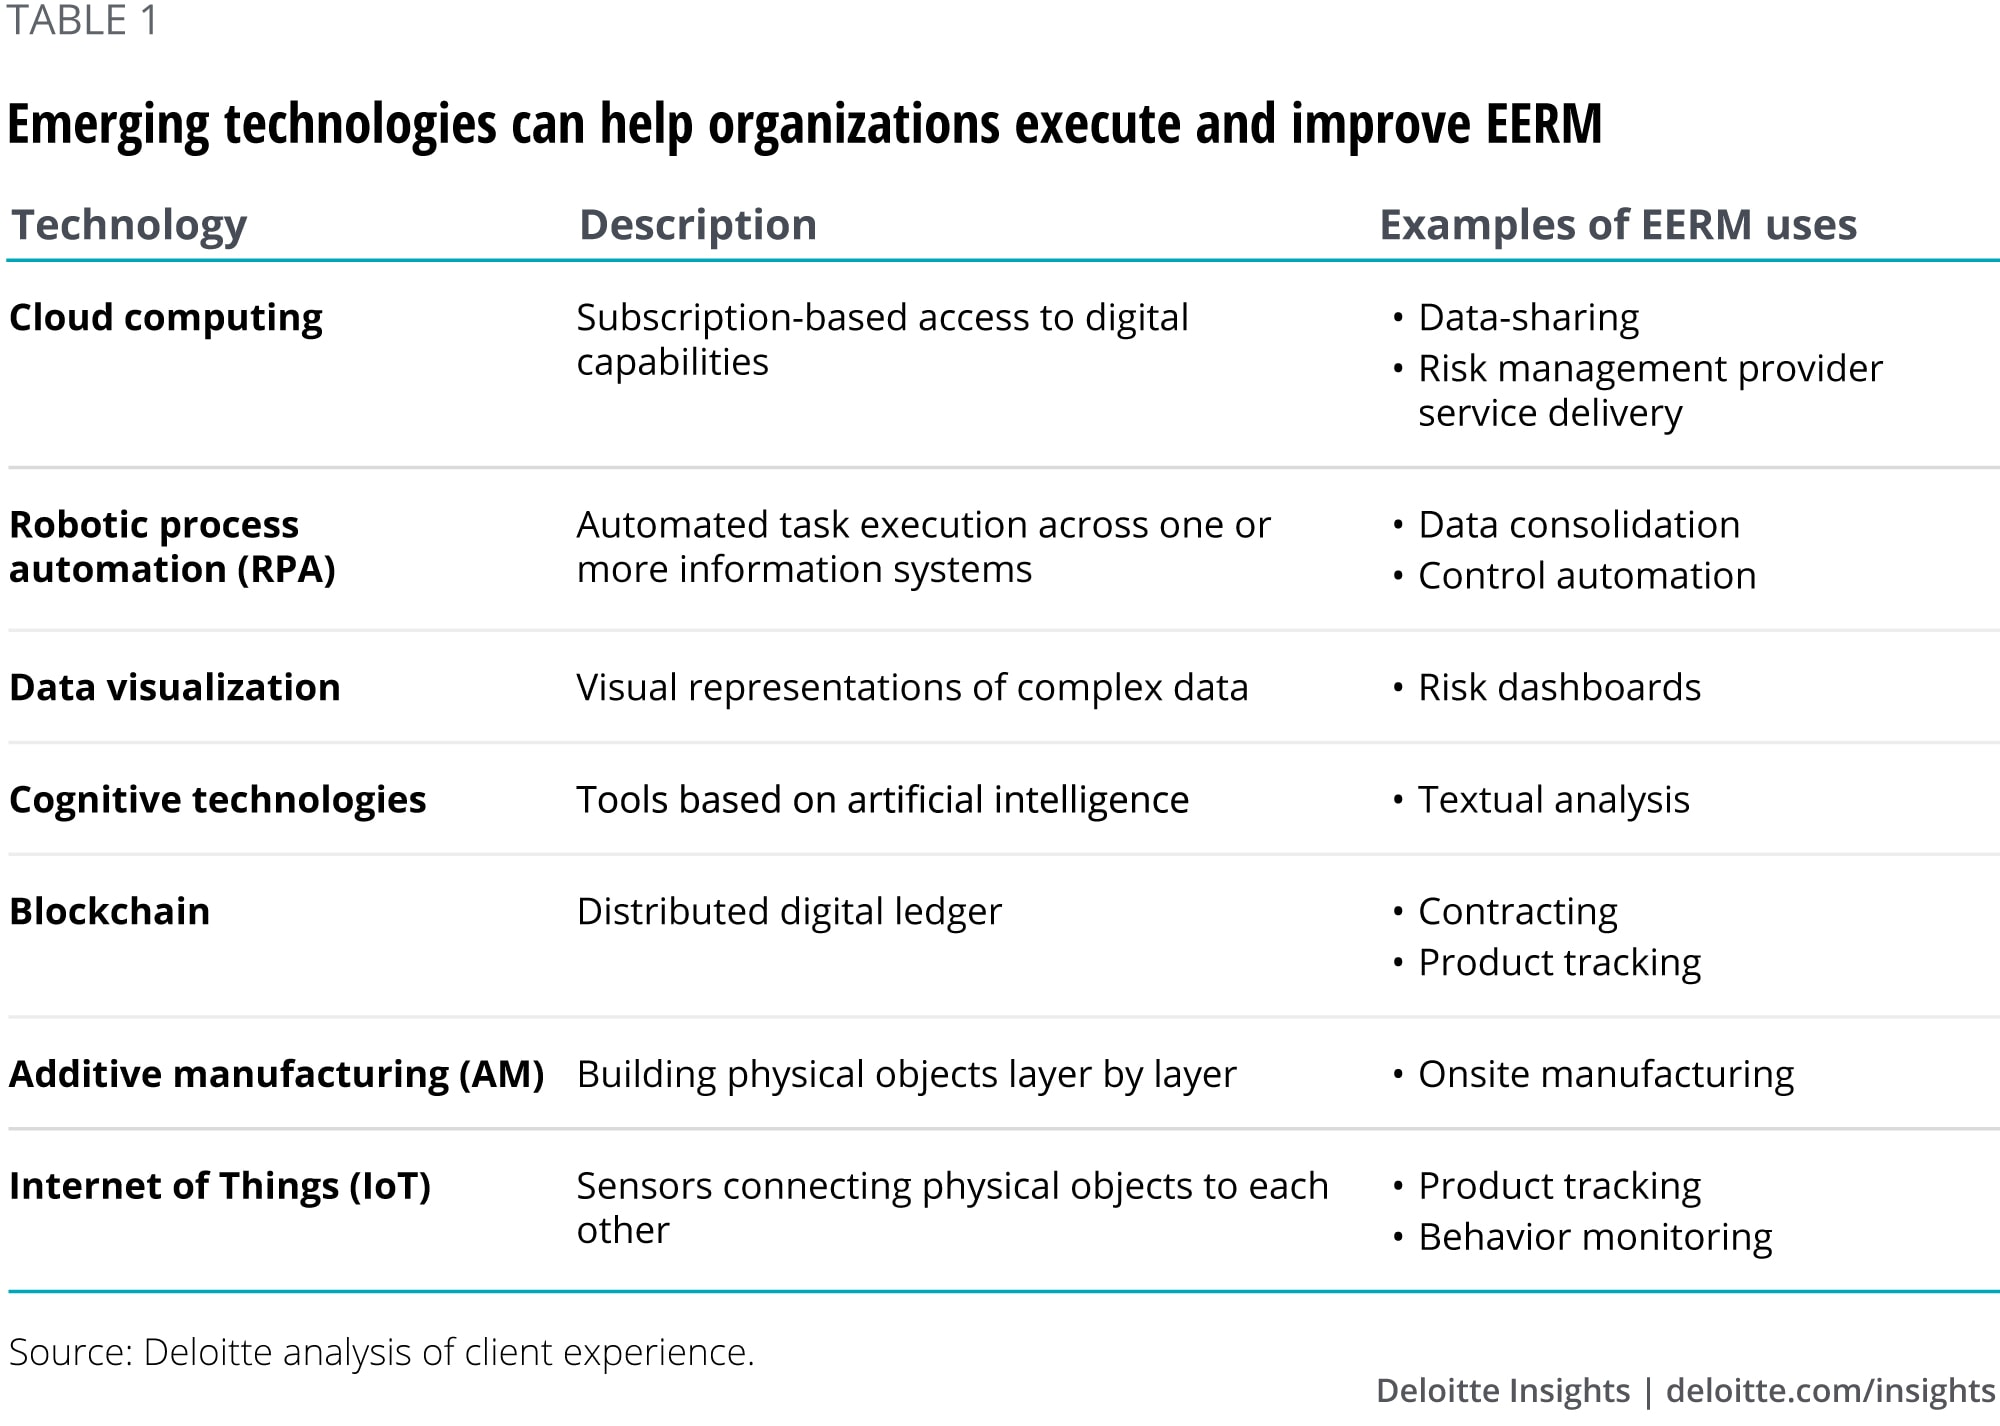 Emerging technologies can help organizations execute and improve EERM